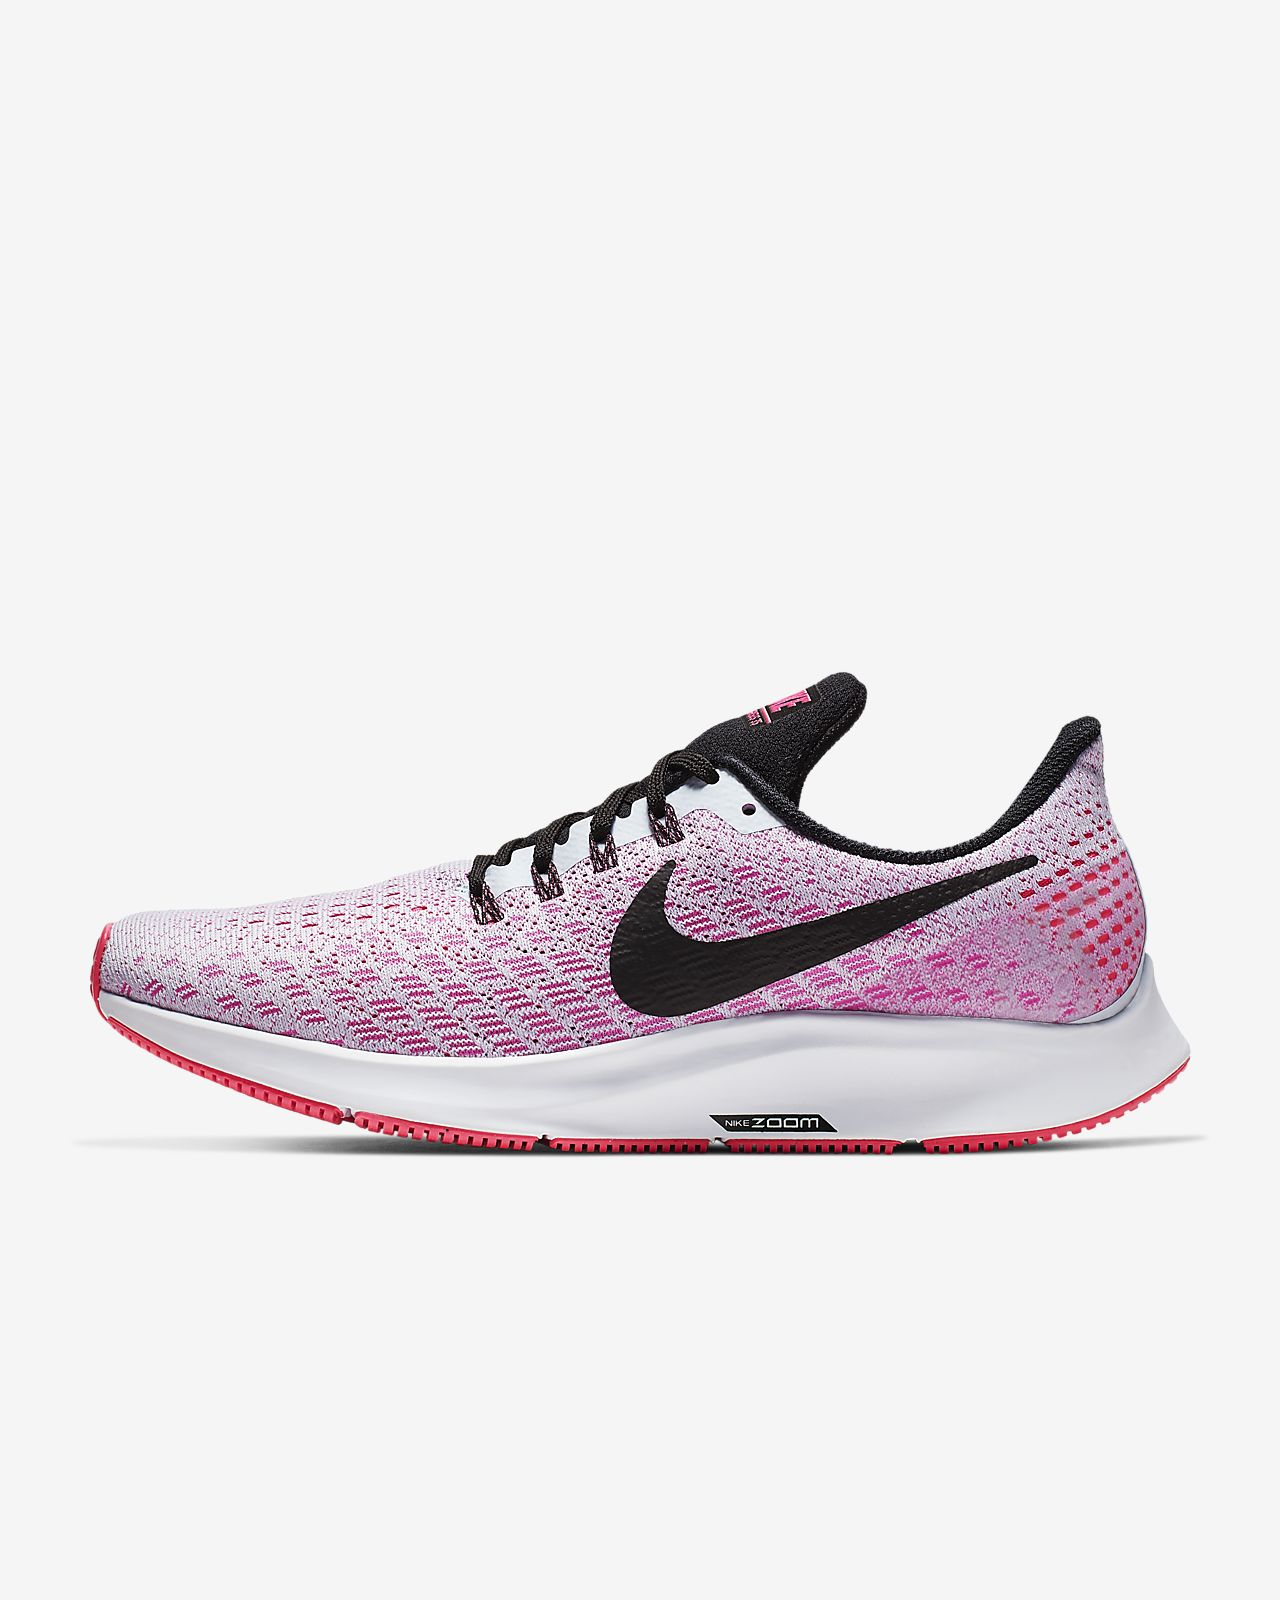 6991460de5e5 Nike Air Zoom Pegasus 35 Women s Running Shoe. Nike.com